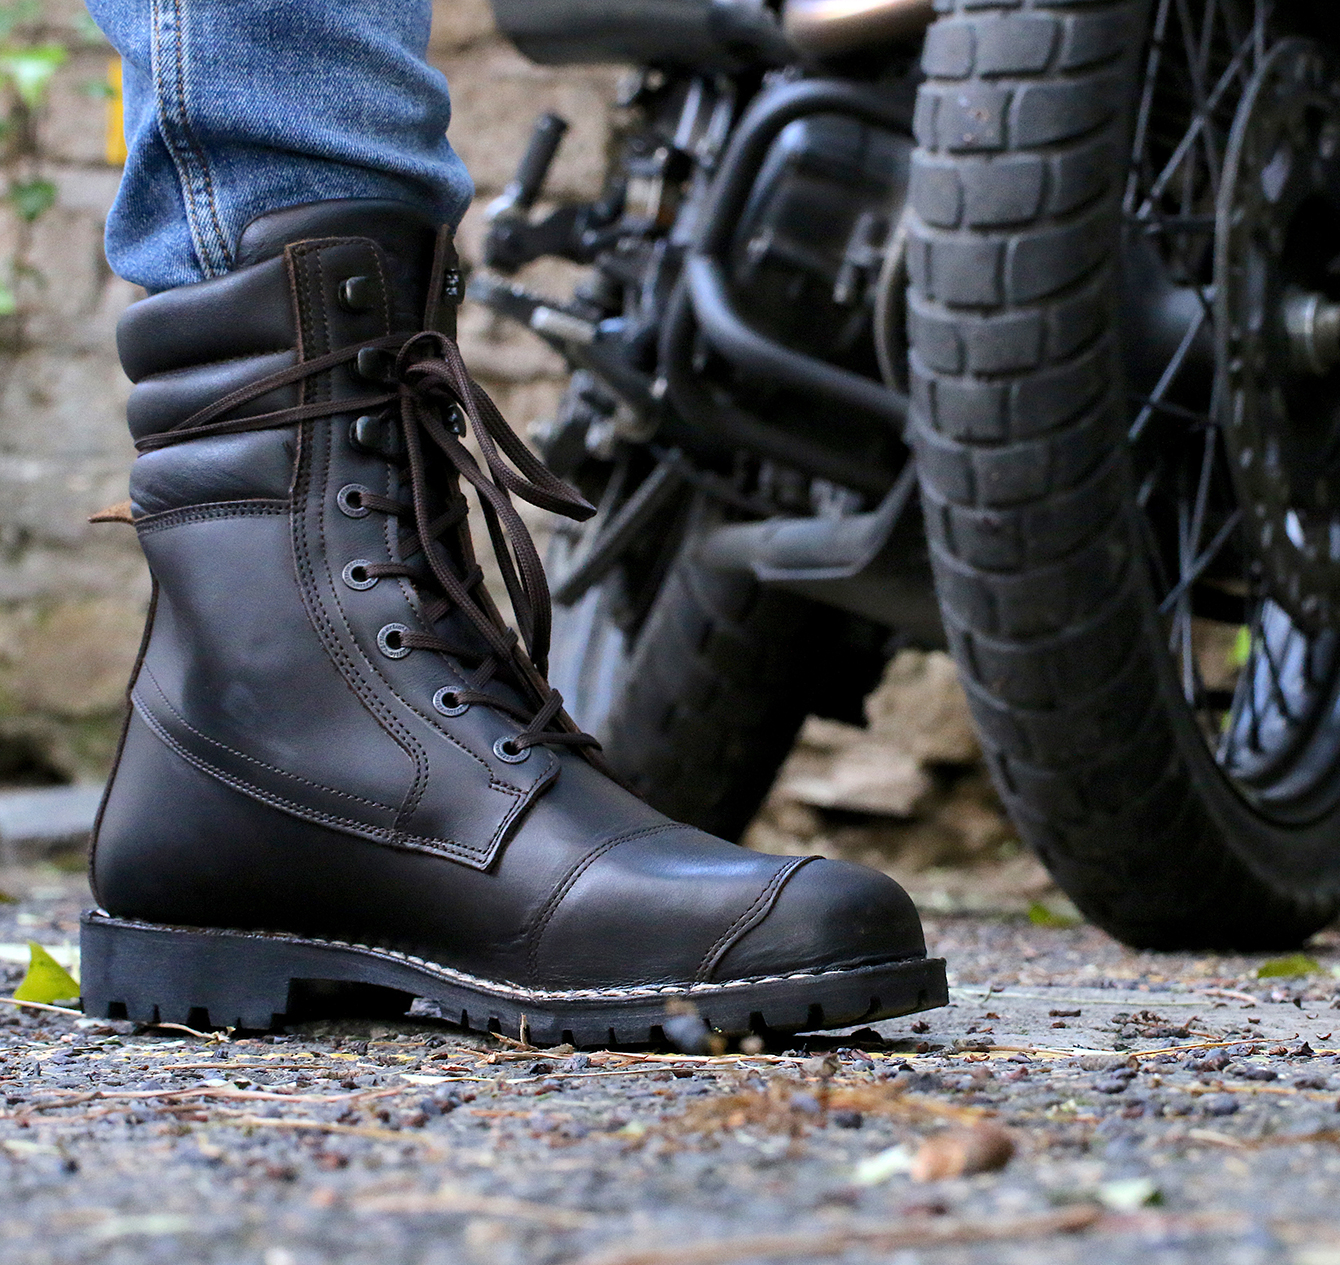 Safety: What are the best motorcycle boots?